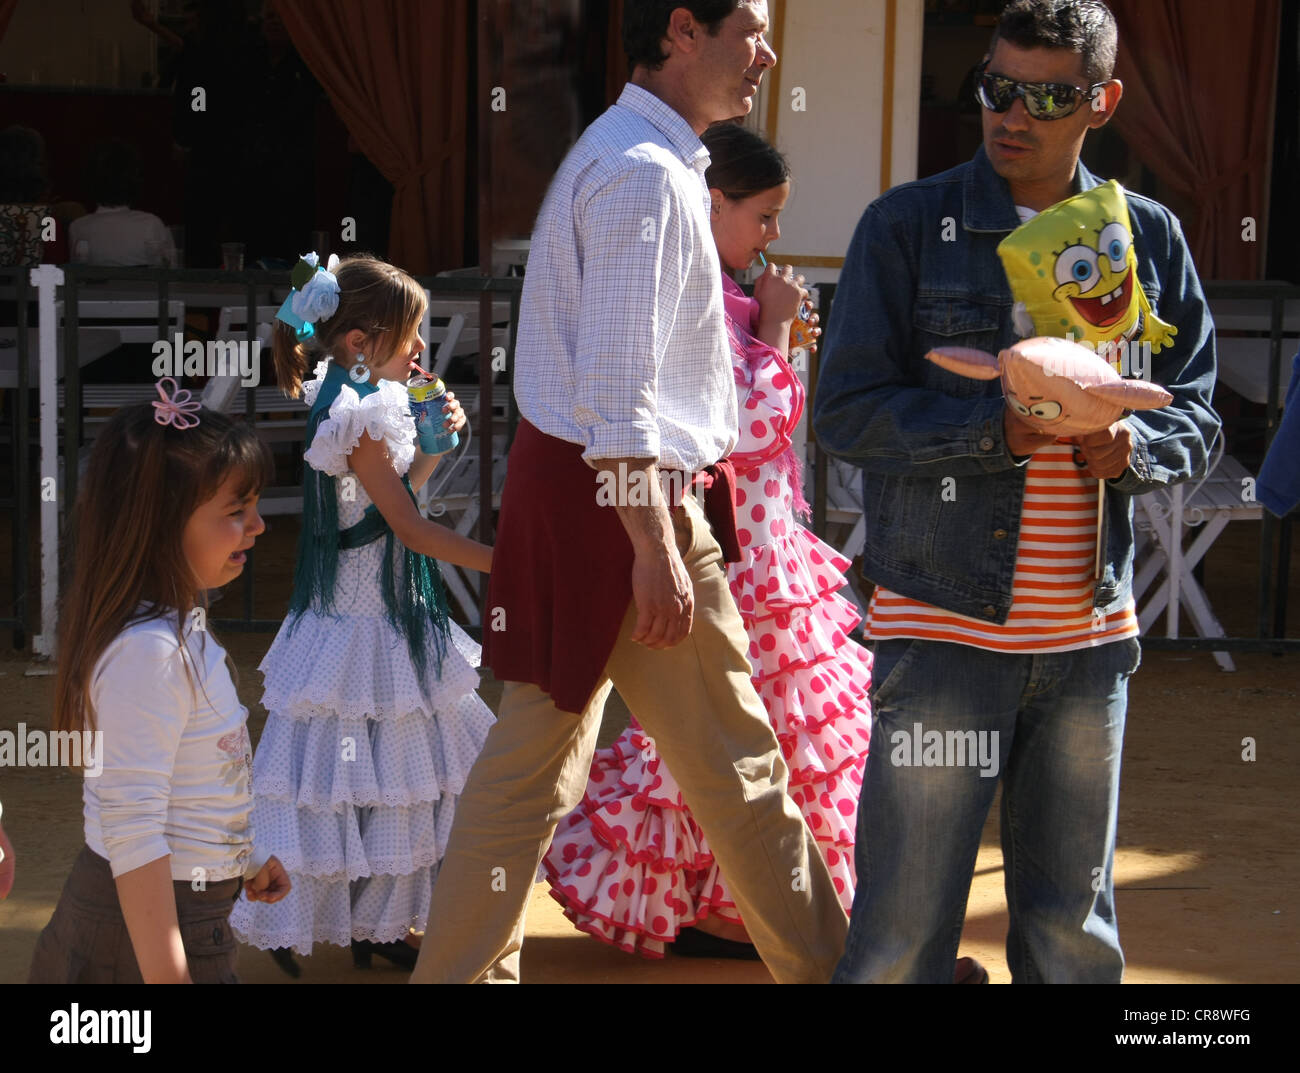 Horse fair in Jerez in Spain - Stock Image